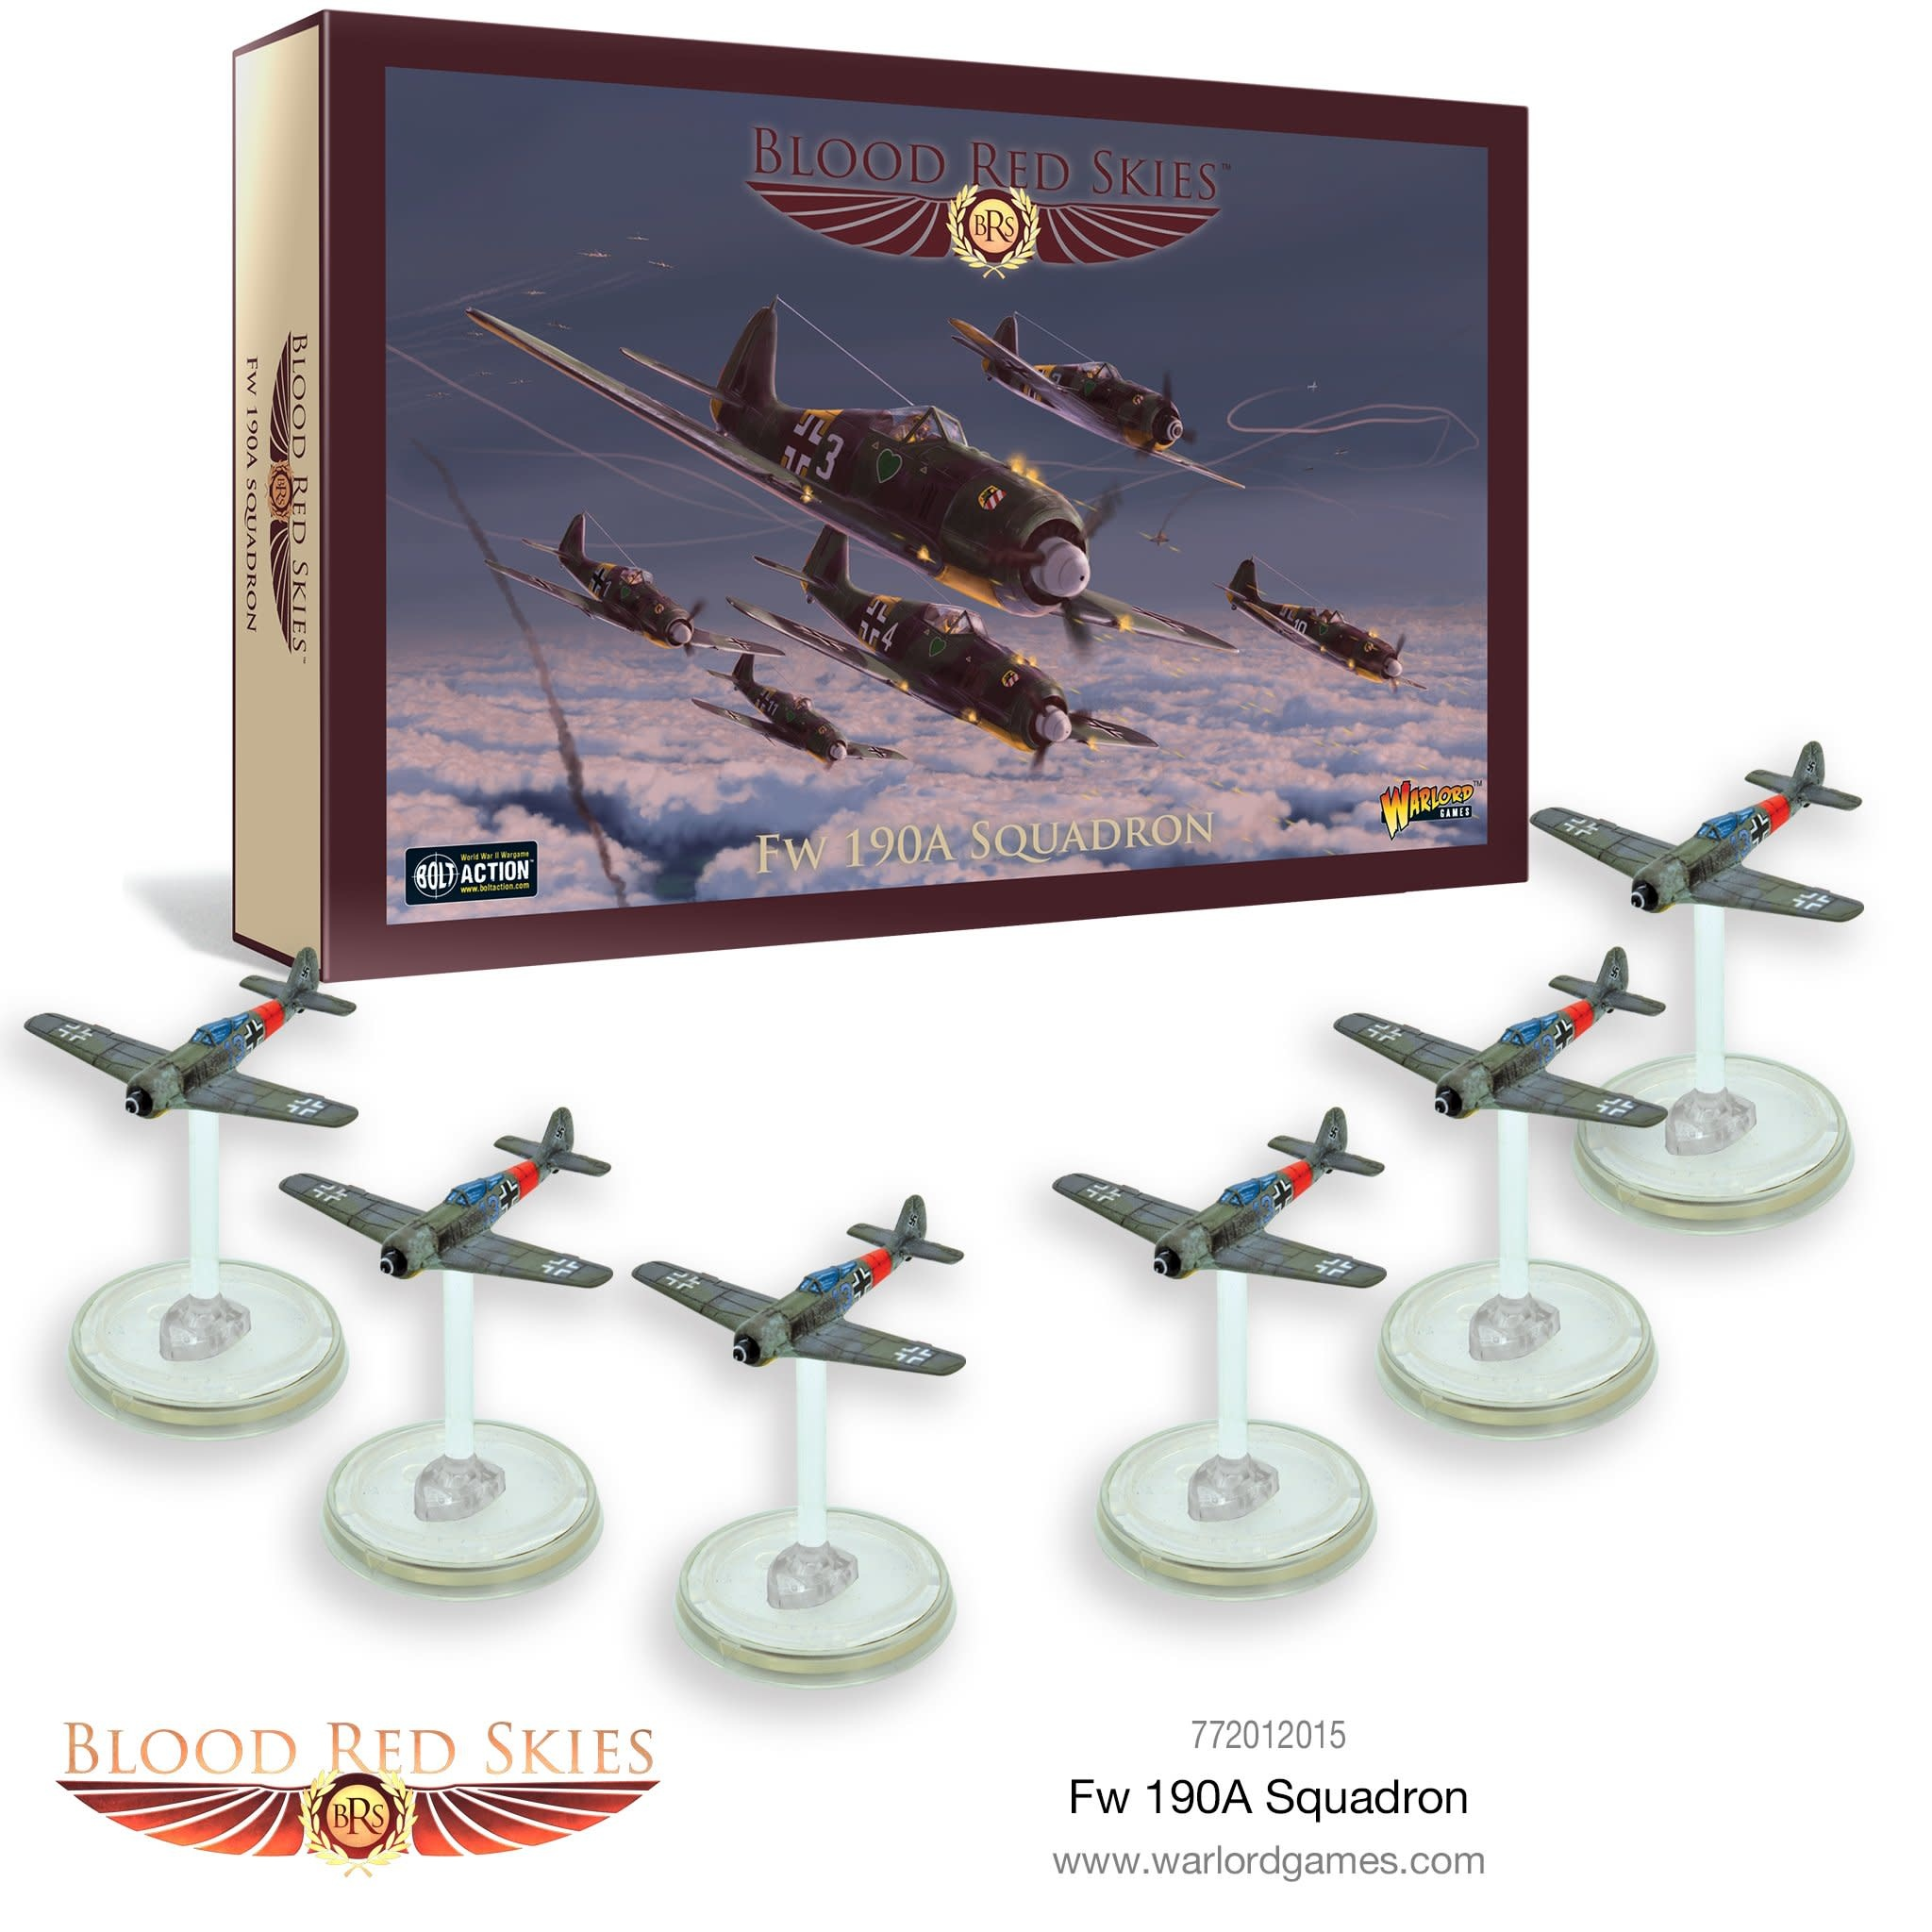 Warlord games Blood Red Skies: Fw 190A Squadron